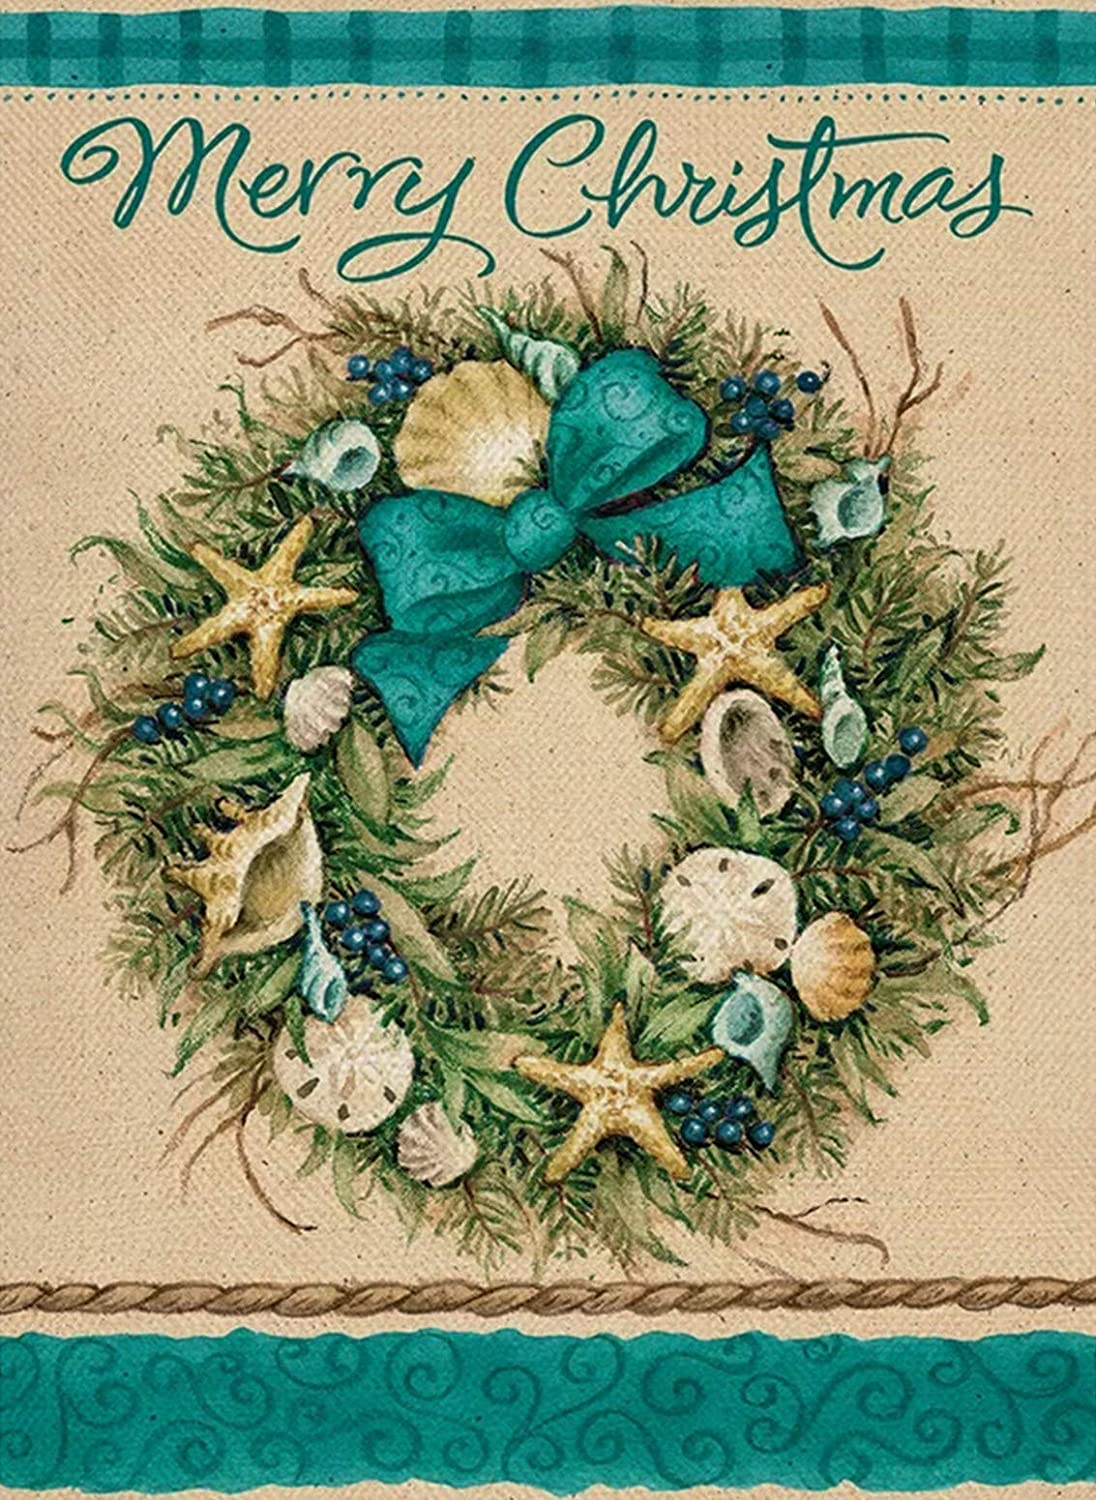 Furiaz Merry Christmas Coastal Garden Flag, White Xmas Winter Home Decorative House Yard Outside Small Flag Seashell Starfish Wreath Beach Decor, Farmhouse Holiday Outdoor Seasonal Decoration 12 x 18